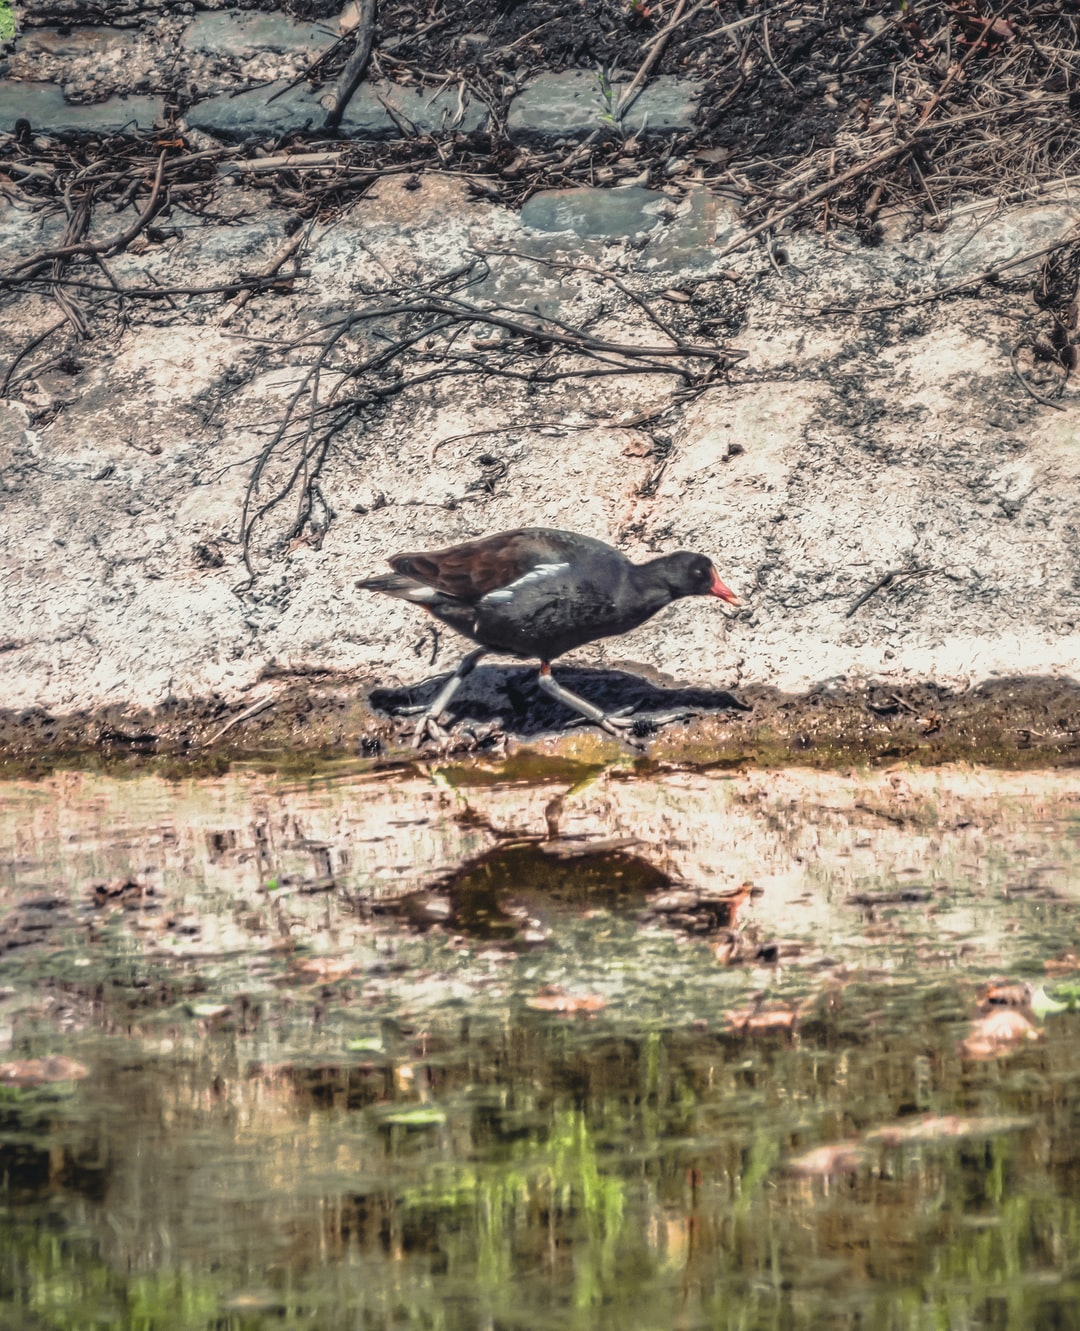 A moorhen walks along the banks of the Conn's Water at Victoria Park (May, 2020).